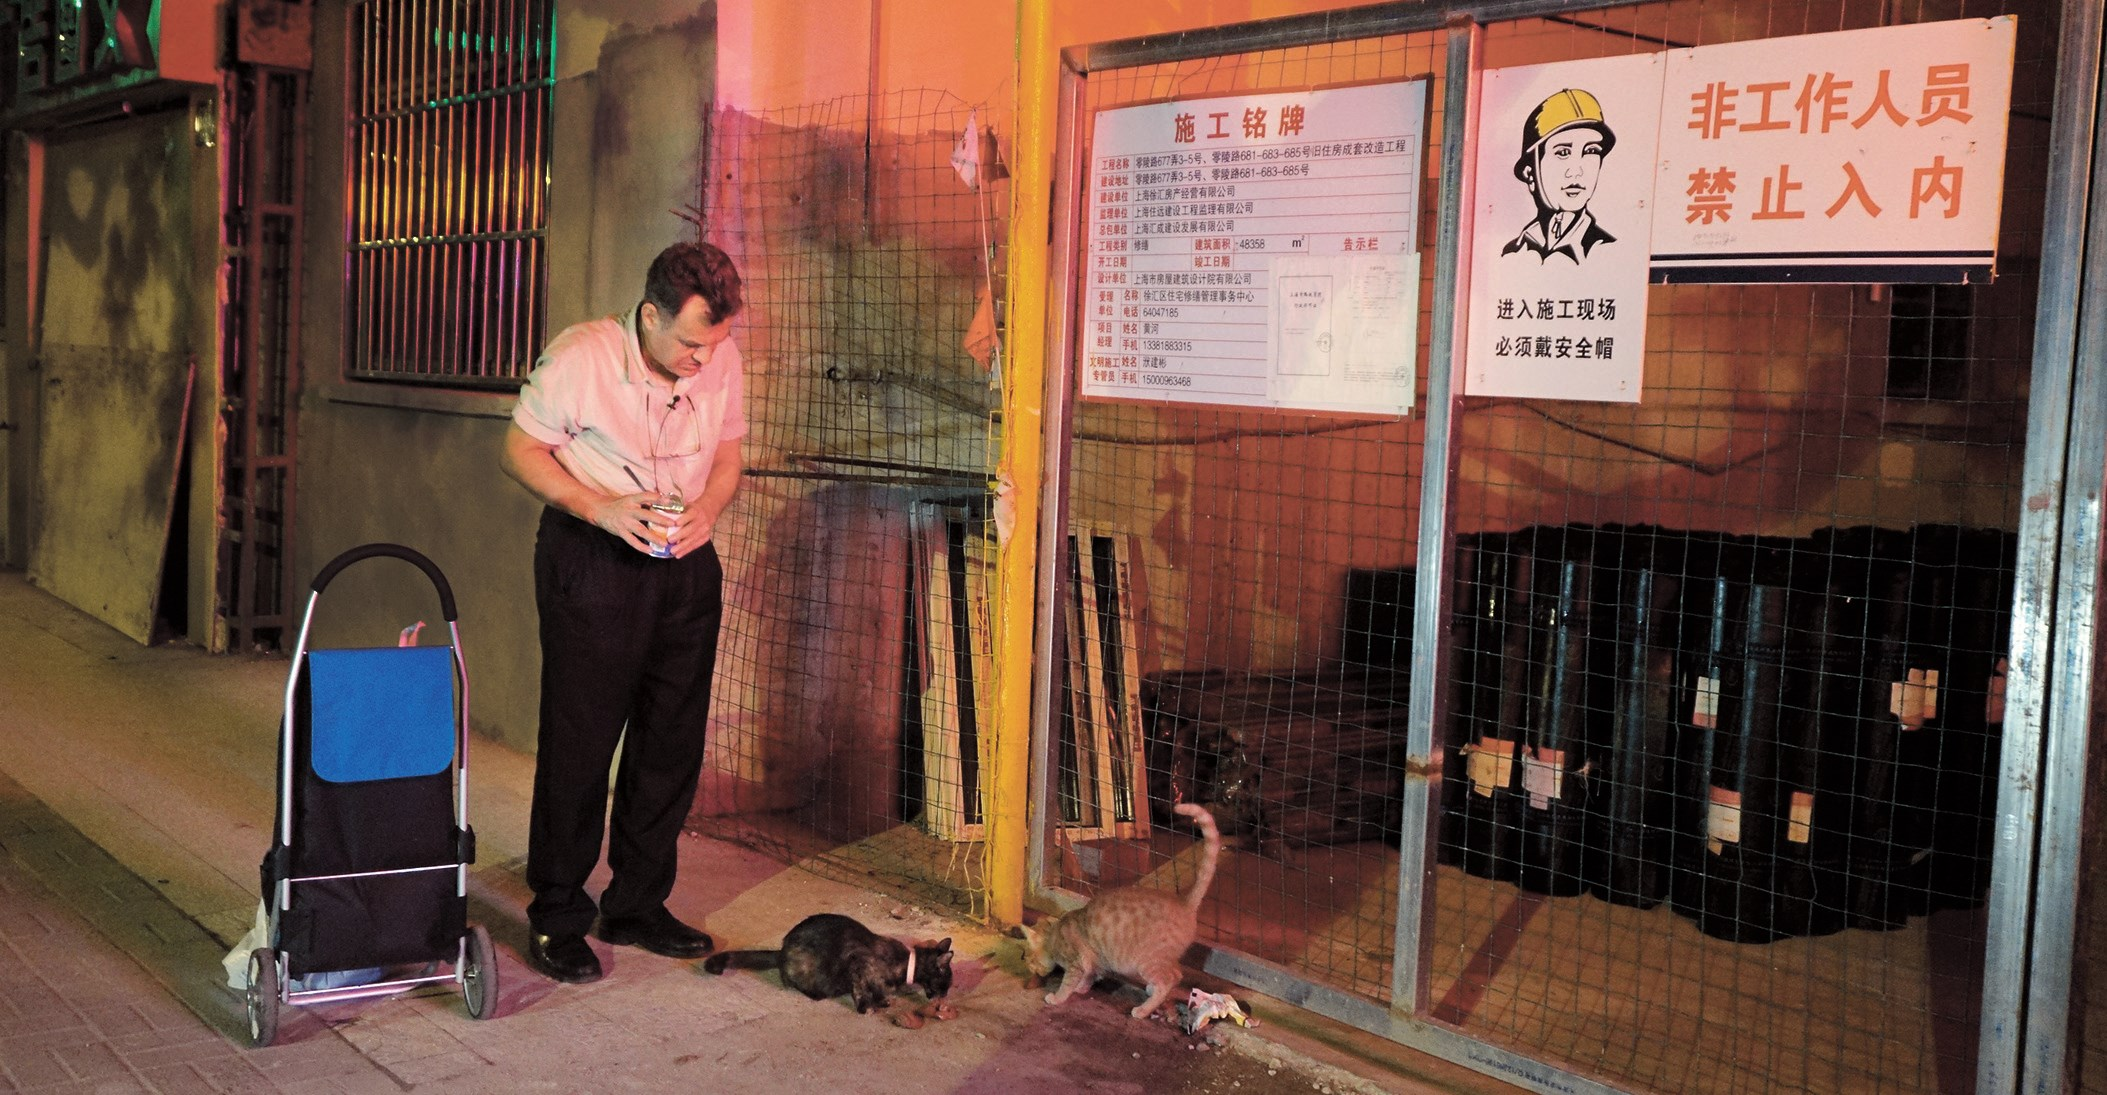 Mekaiel Shirazi, who has lived in China for 20 years, has kept feeding stray cats in Xujiahui for the past six years. — Wang Haoling